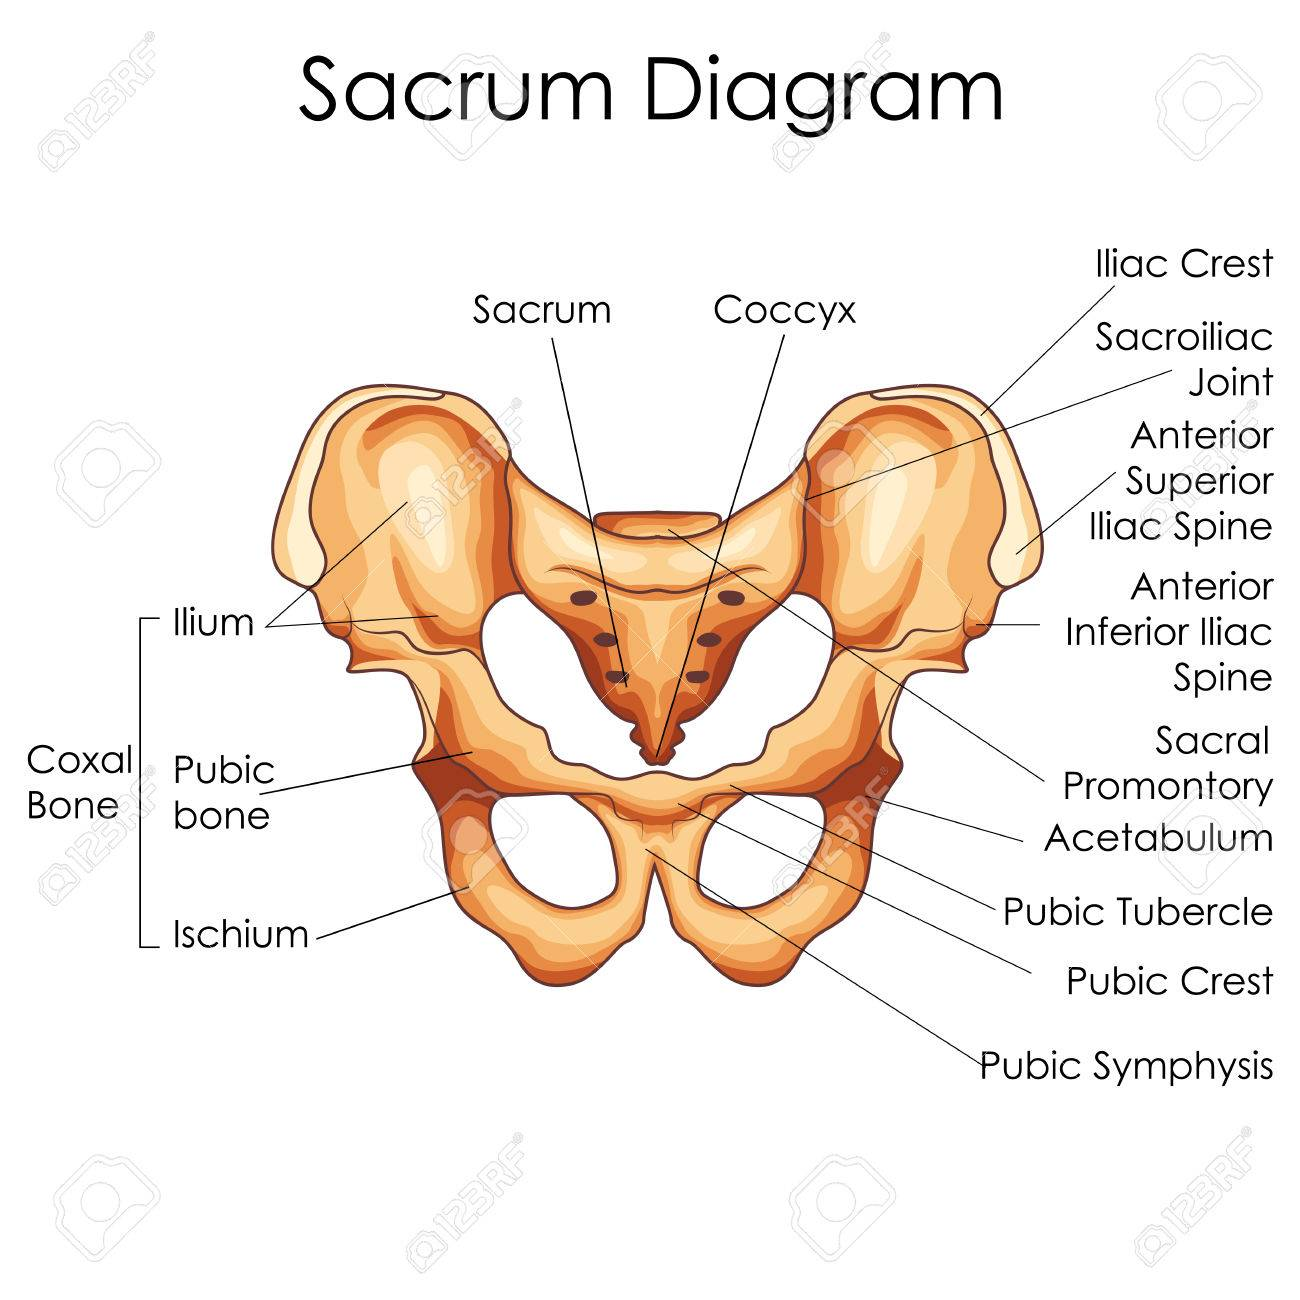 hight resolution of medical education chart of biology for sacrum diagram vector illustration stock vector 79651354